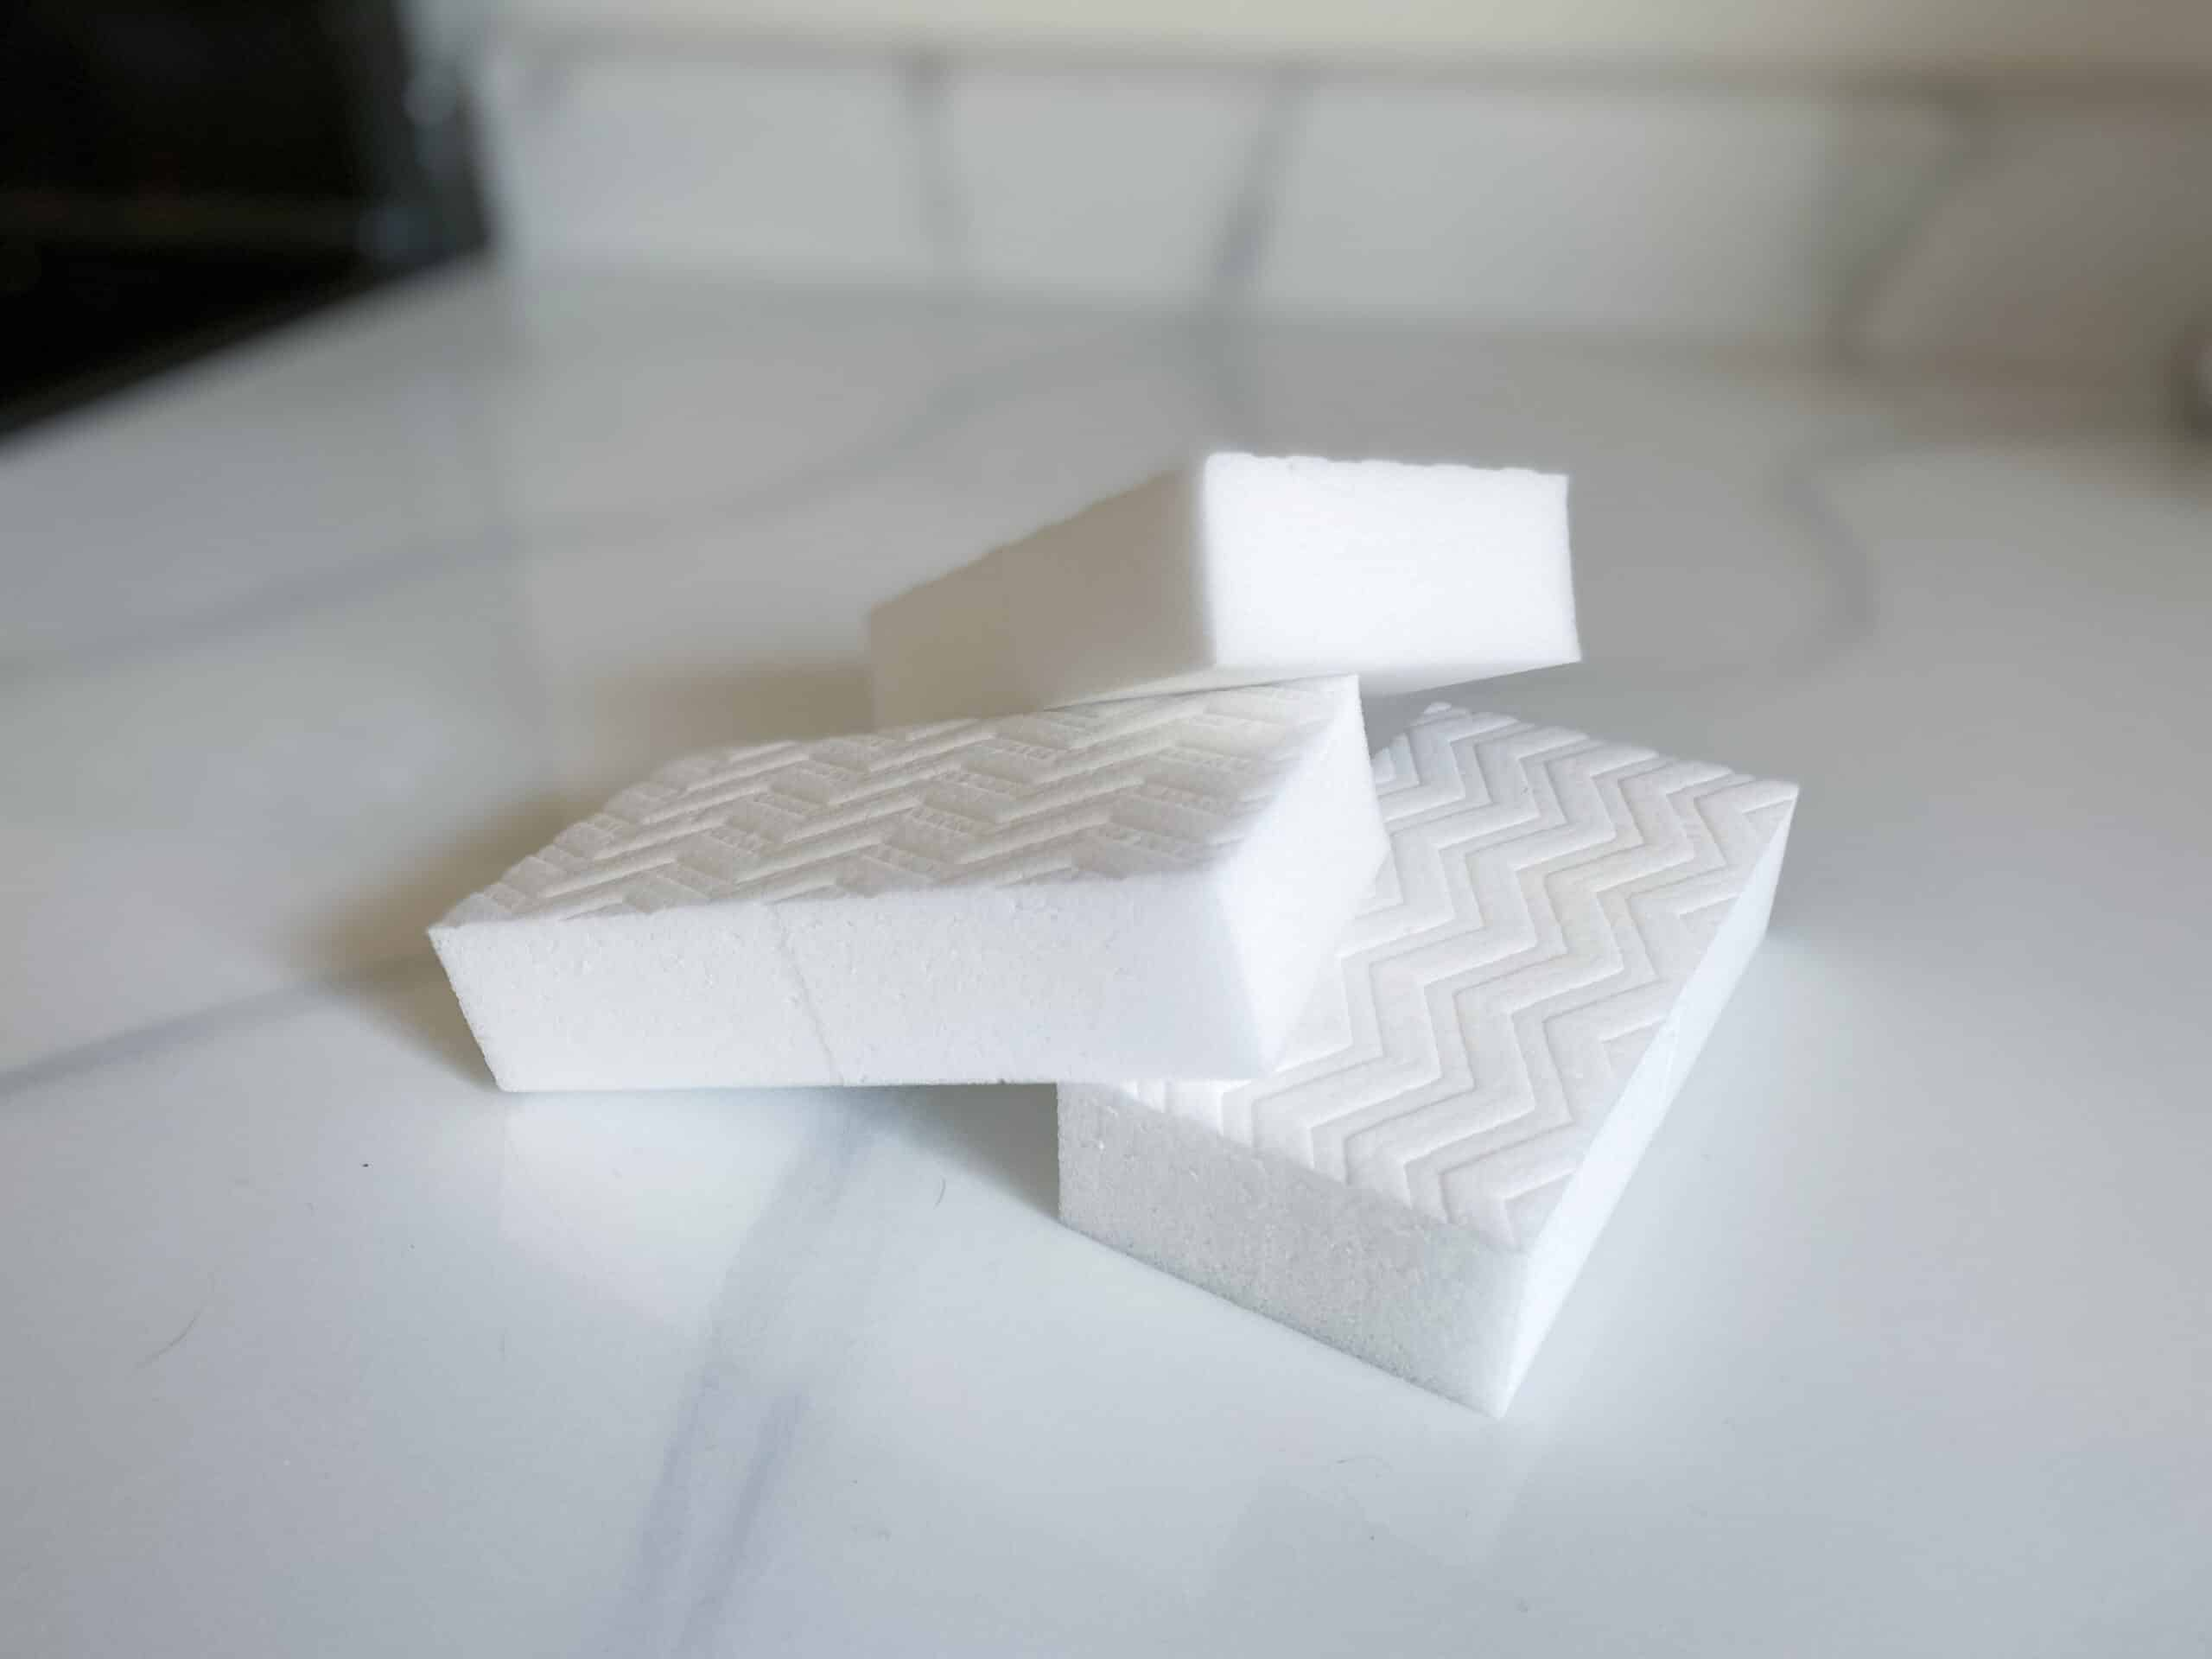 magic eraser cleaning products